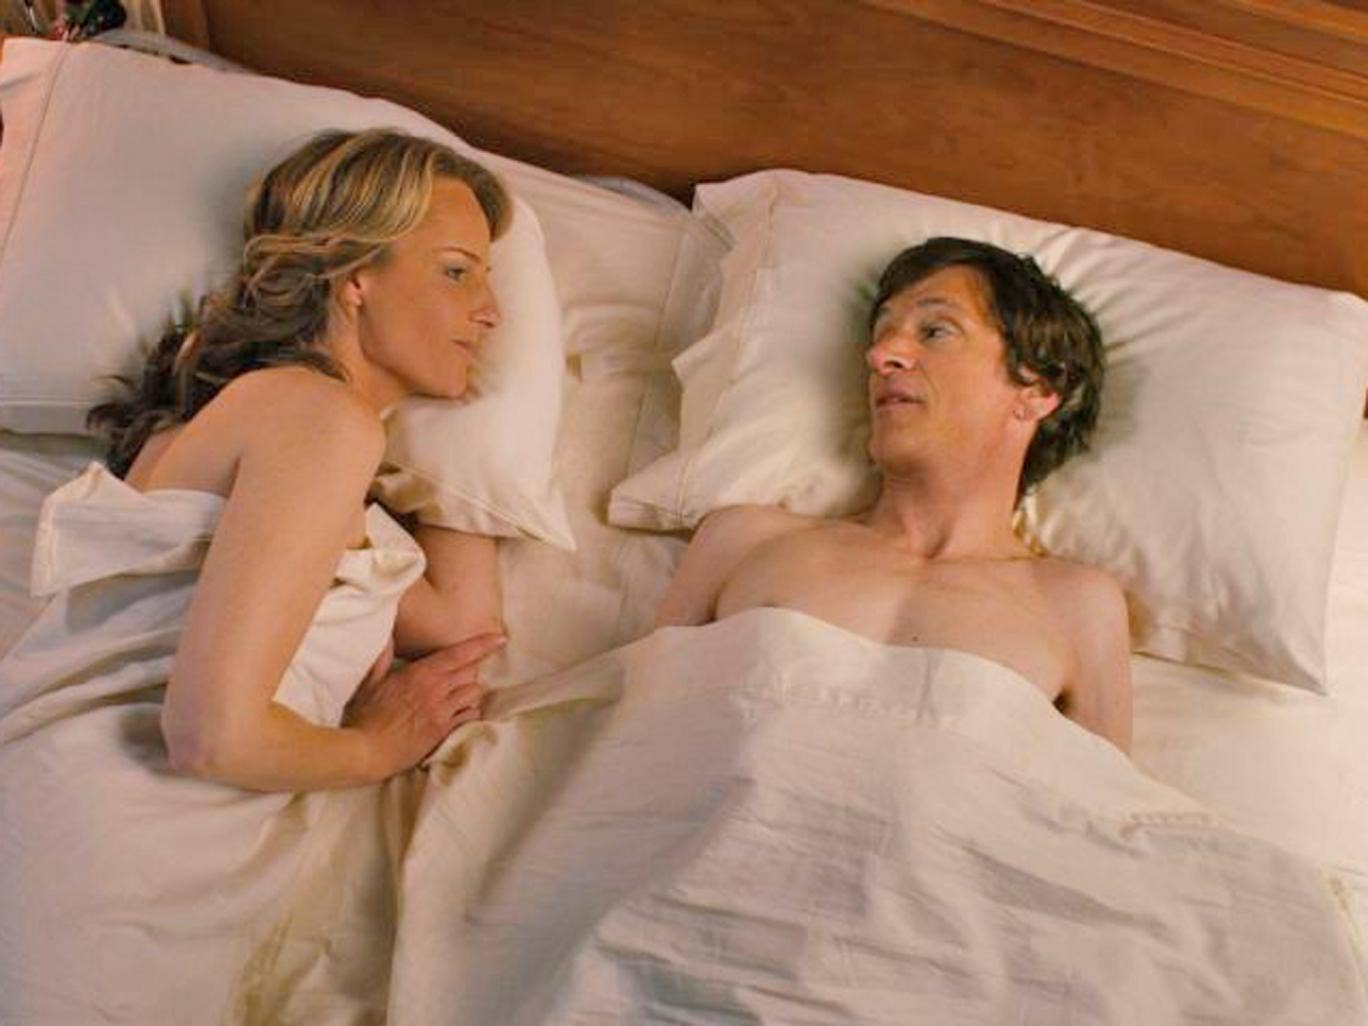 Helen Hunt with John Hawkes in The Sessions